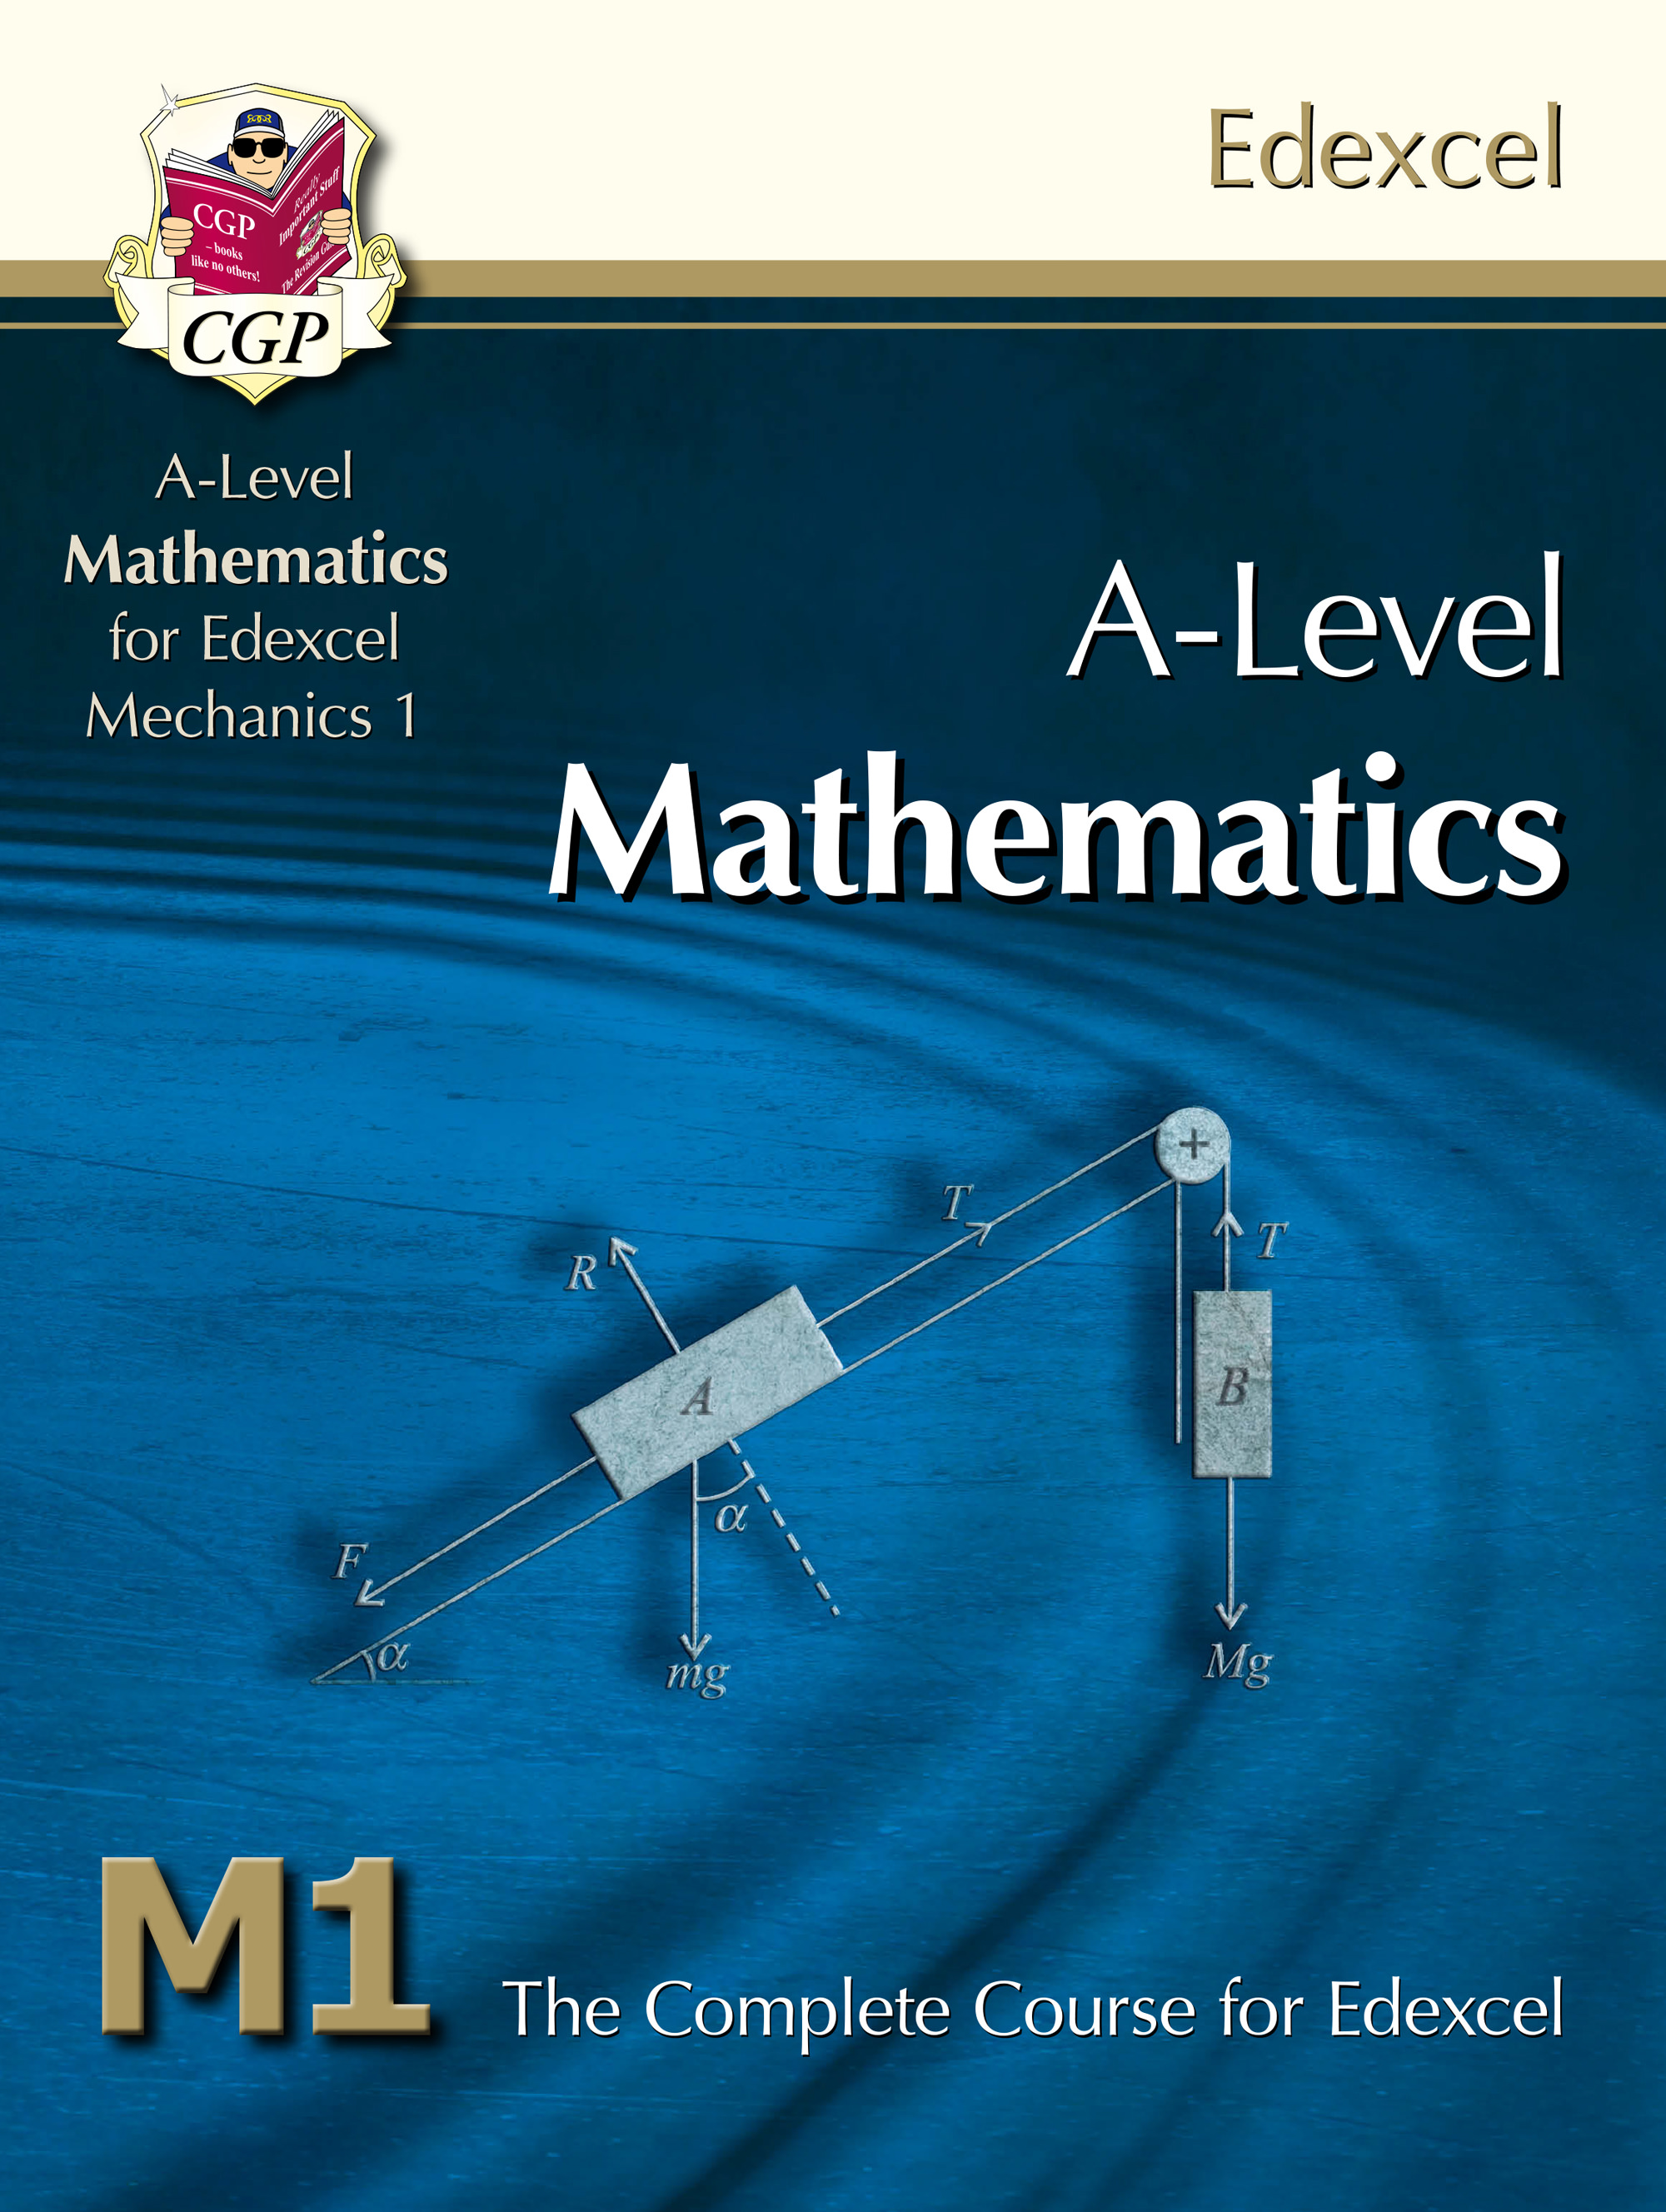 MEM1T51DK - A-Level Maths for Edexcel - Mechanics 1: Student Book